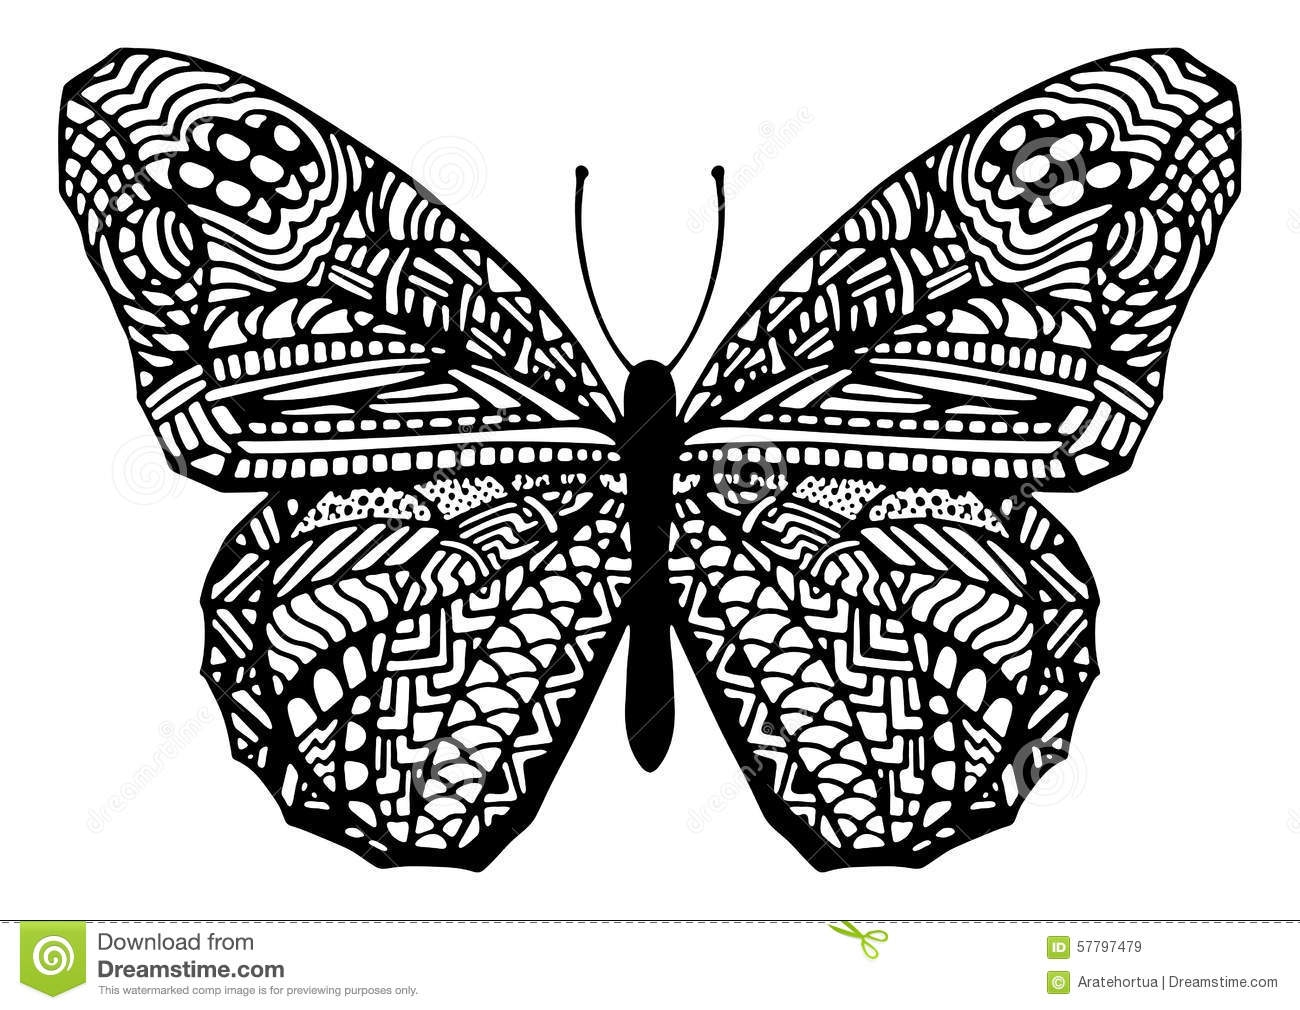 elephant adult coloring pages - stock illustration hand drawn zentangle style butterfly illustration vector image